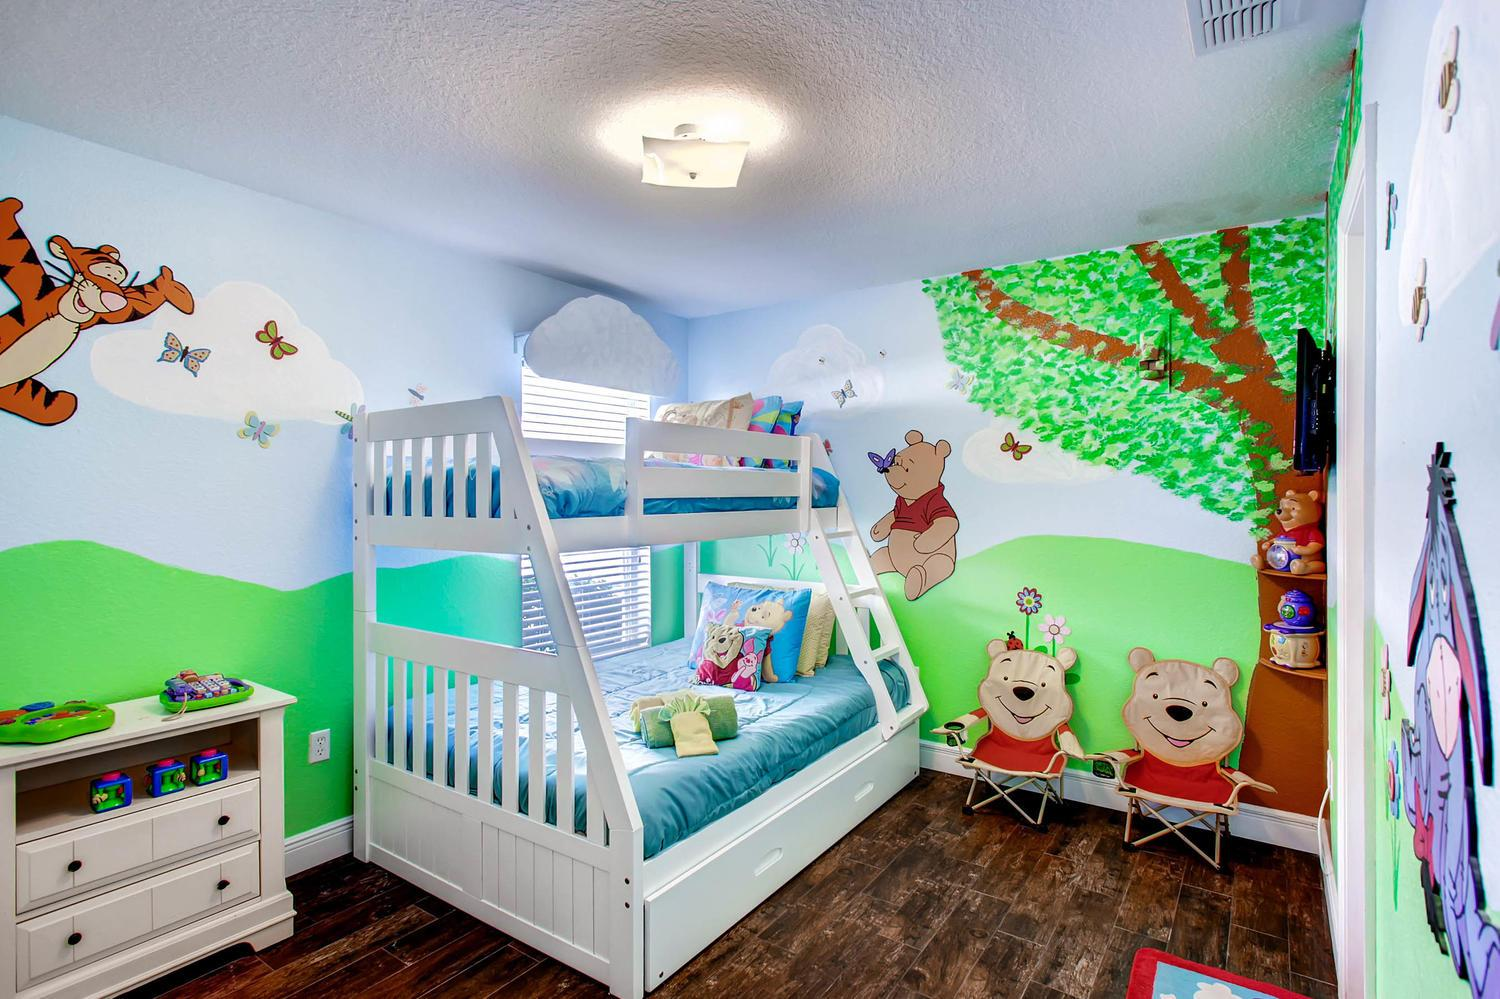 Pooh themed room with bunk bed with trundle that can sleep 4. 32 inch Smart TV.